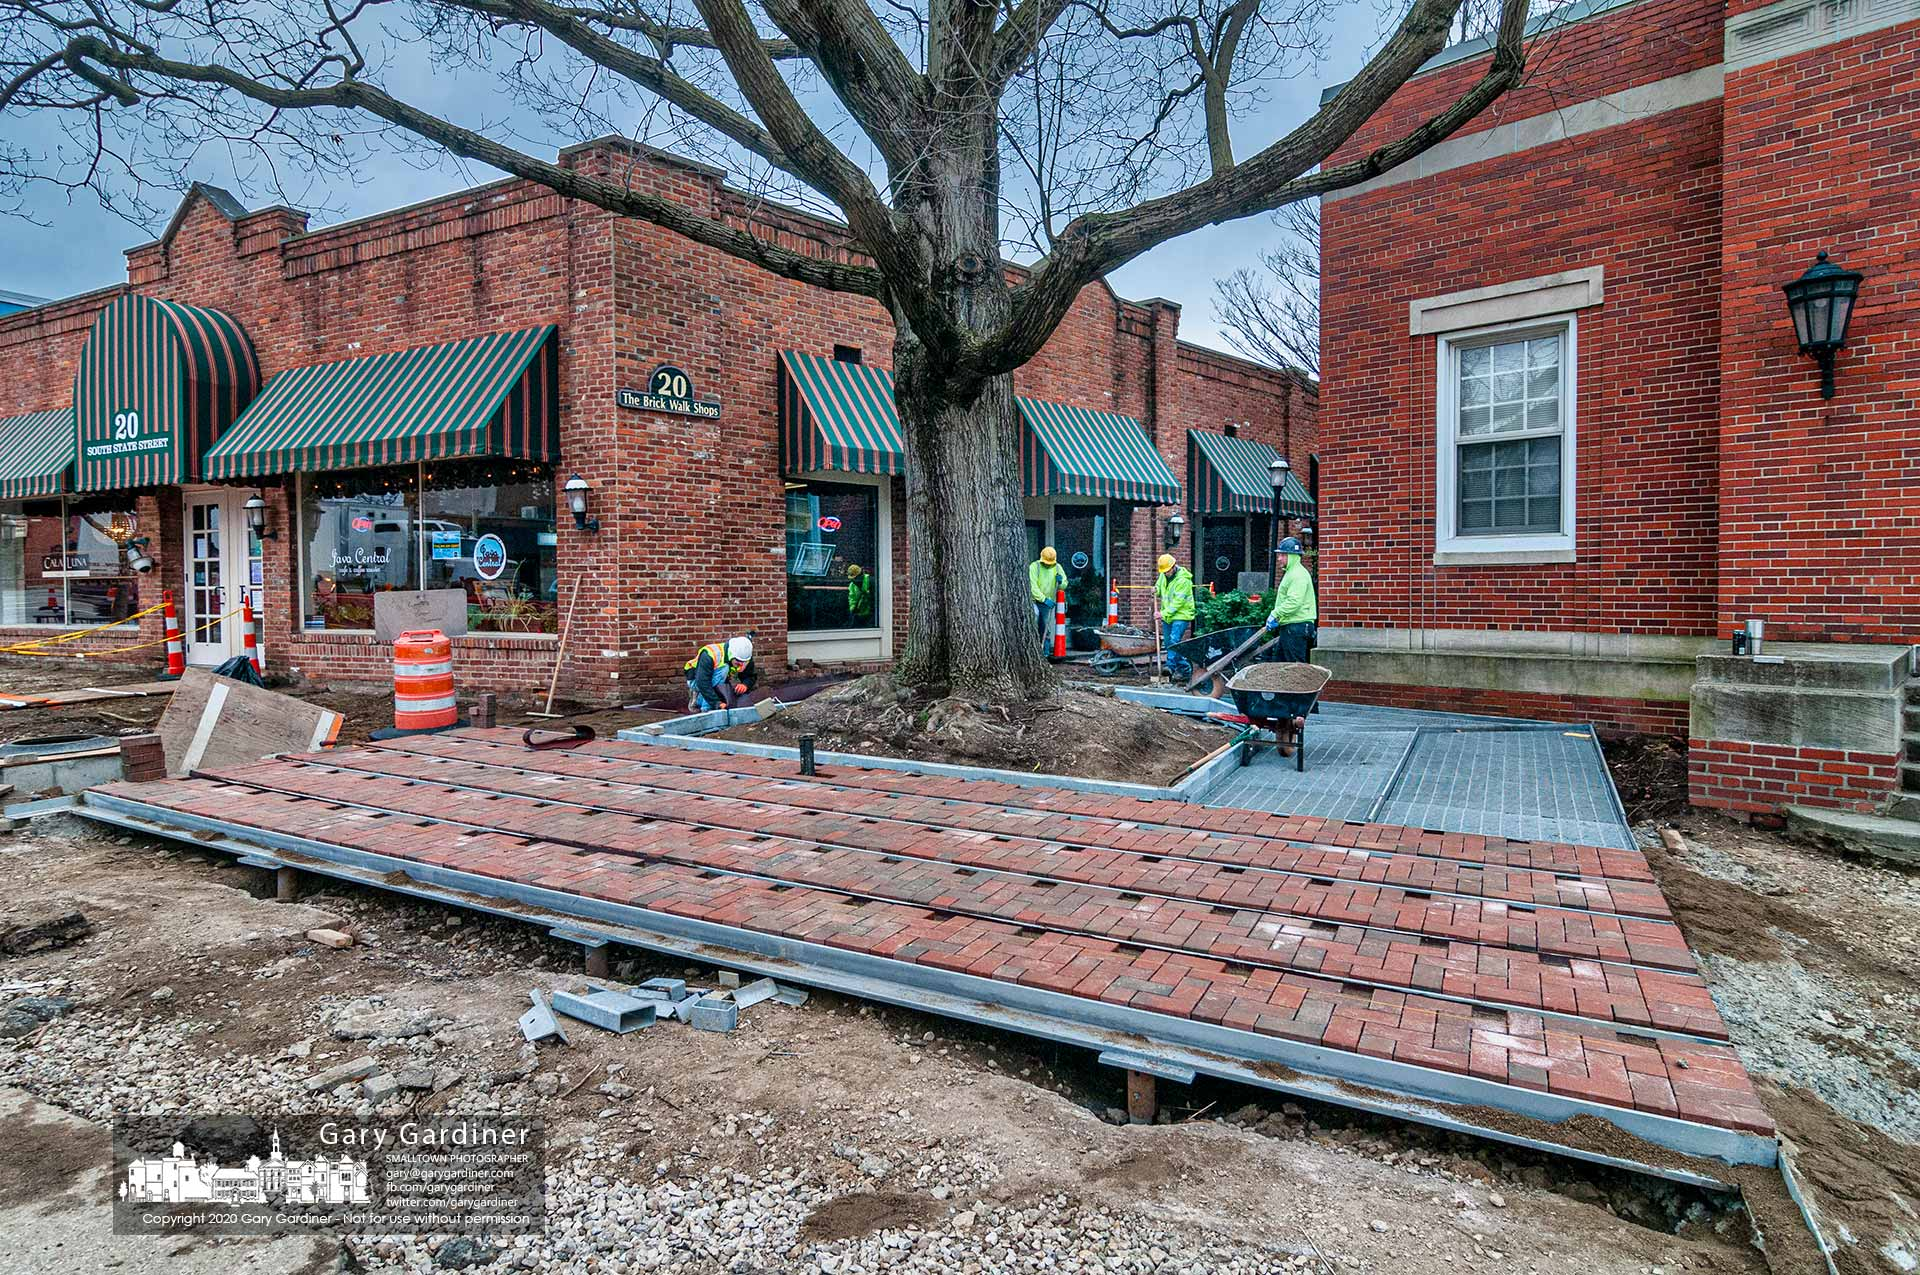 A landscaping crew lays brick on the steel grate structure built to help protect and provide a level, ADA-compliant walkway around the heritage oak next to Java Central. My Final Photo for April 1, 2020.